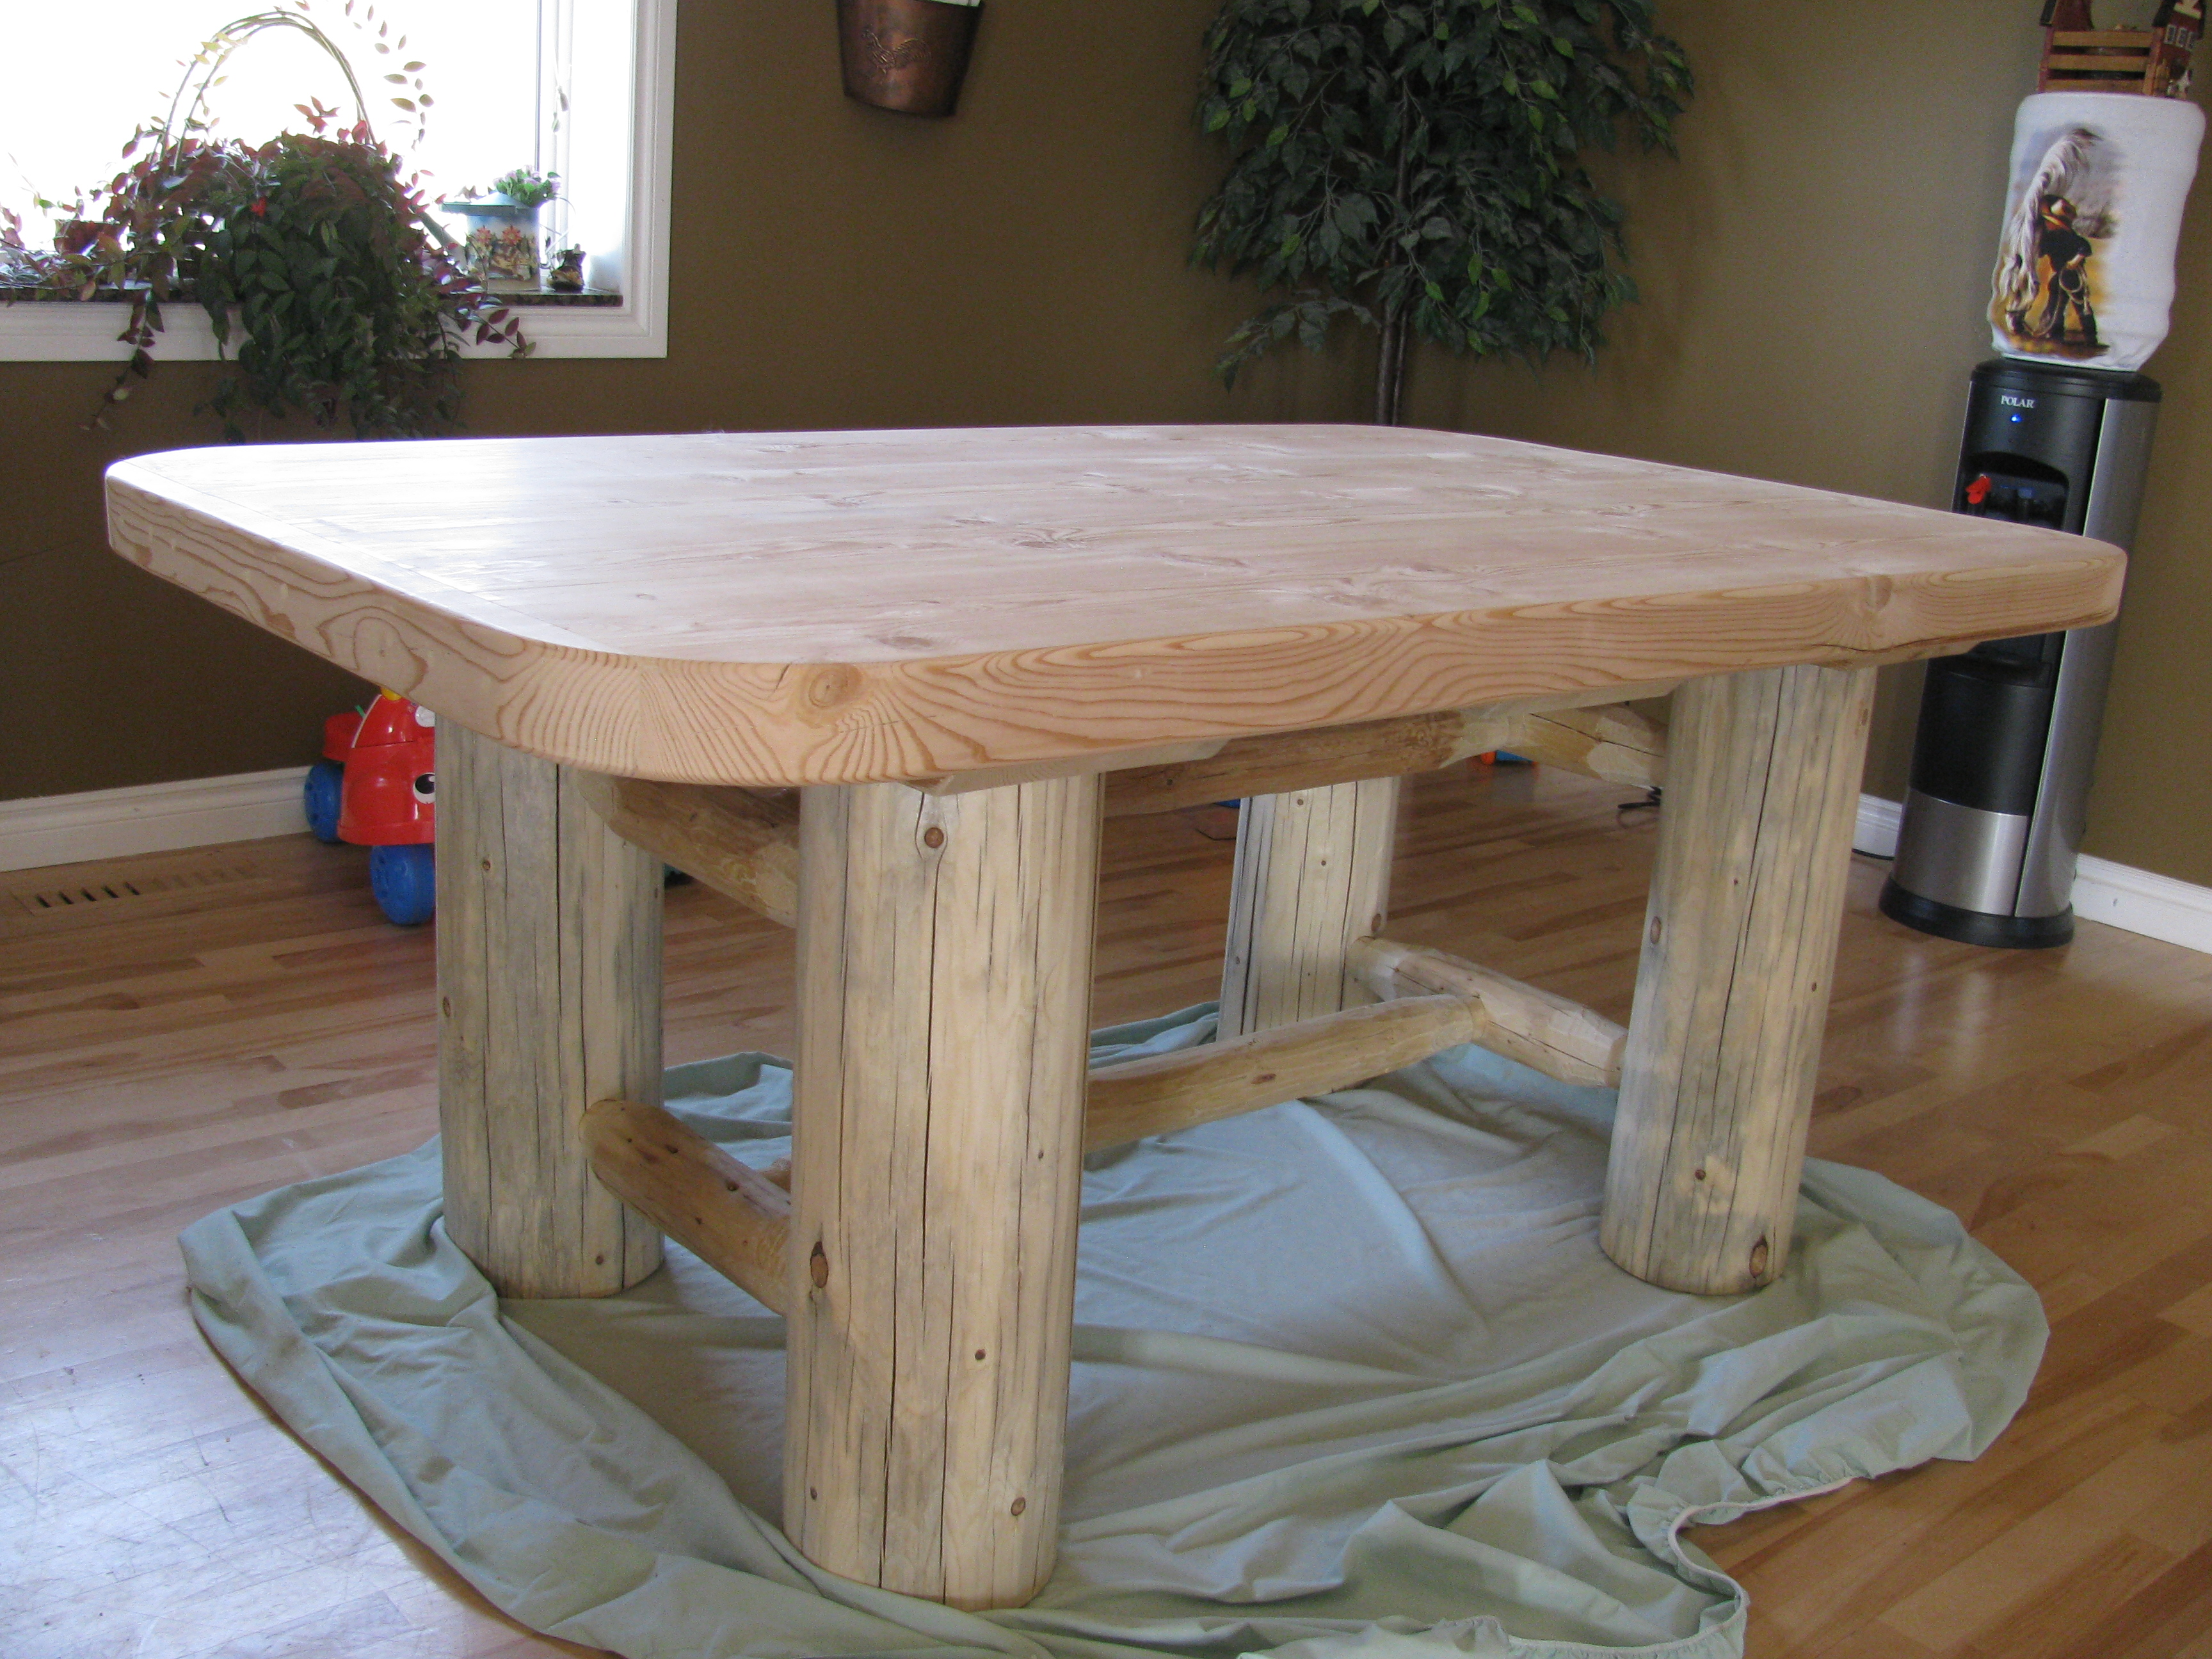 Sands Bed-Dining Table -May 2010 010